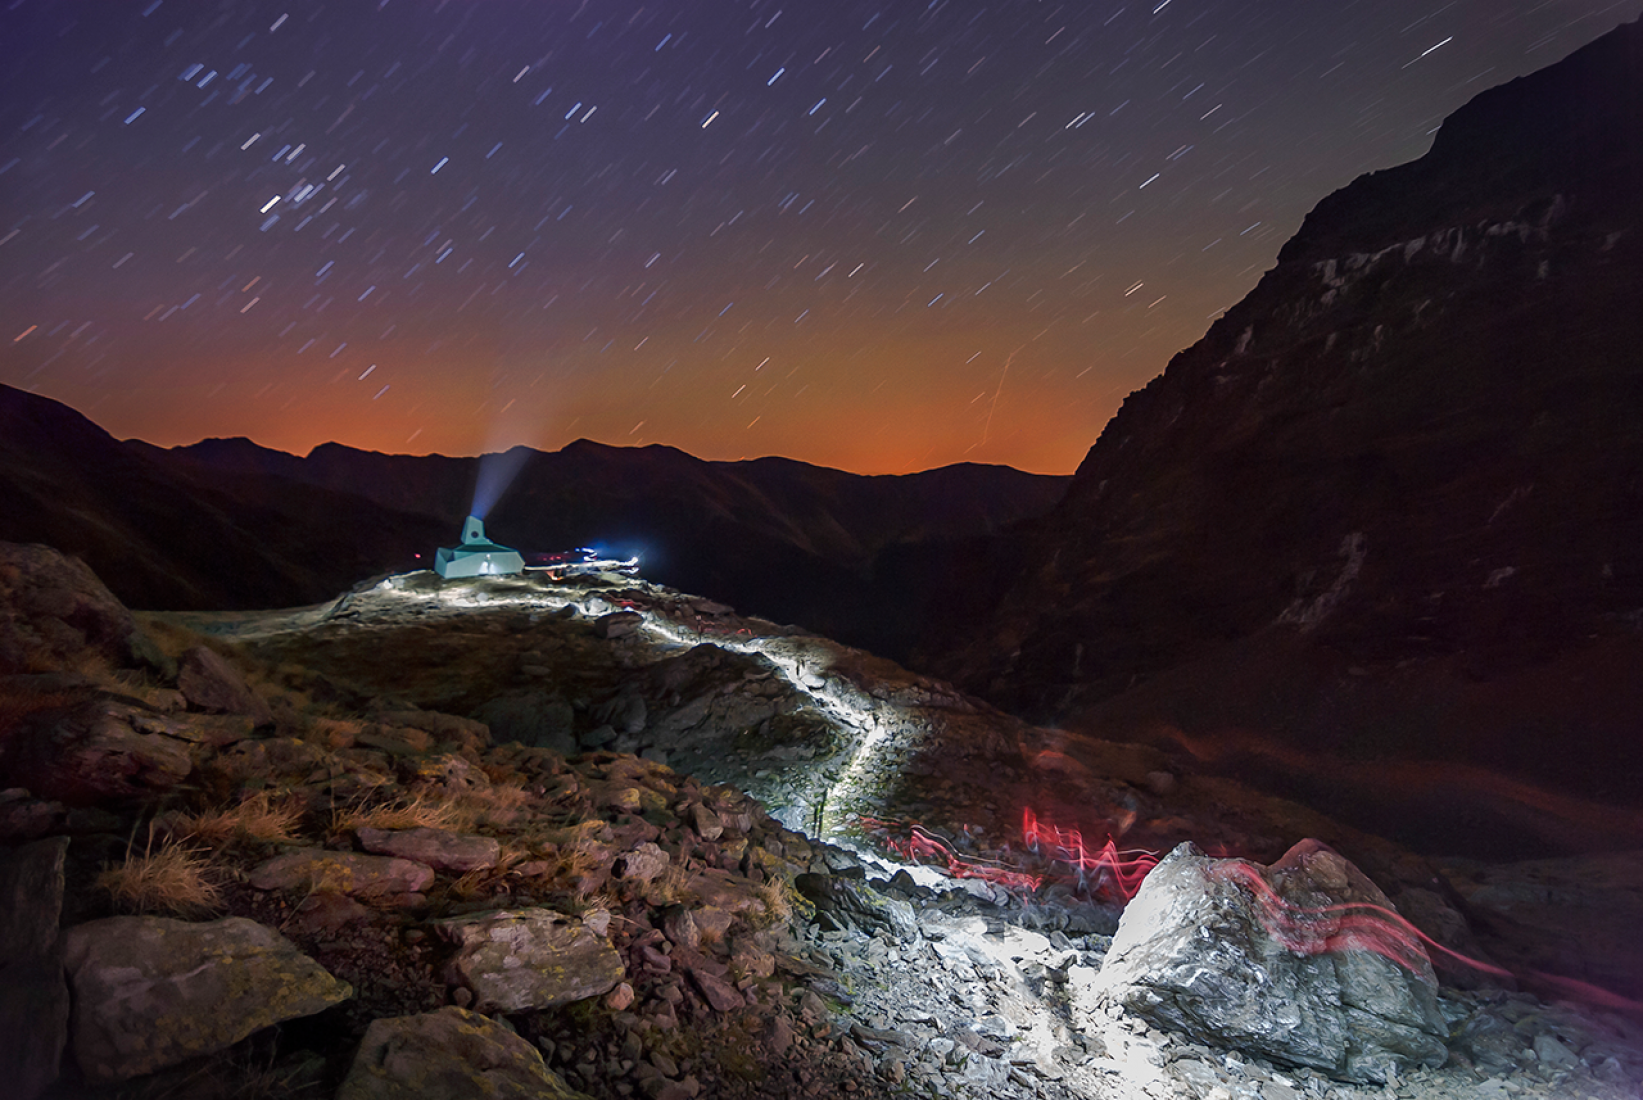 Night view. Caltun mountain shelter by Archaeus. Photography © Dan Purice.